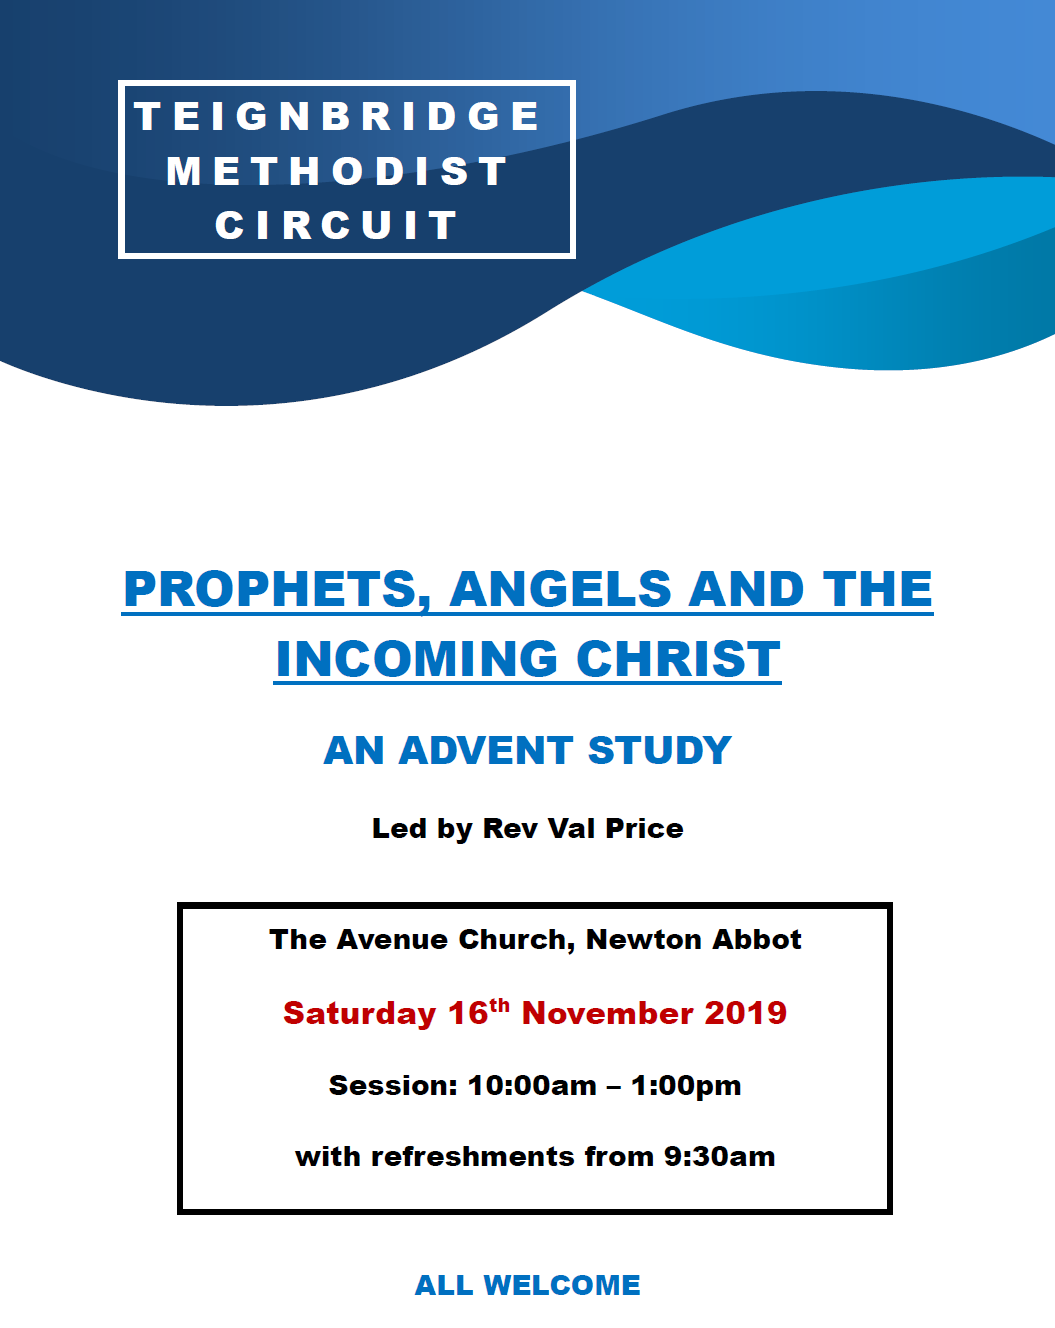 An Advent Study @ The Avenue Church, Newton Abbot